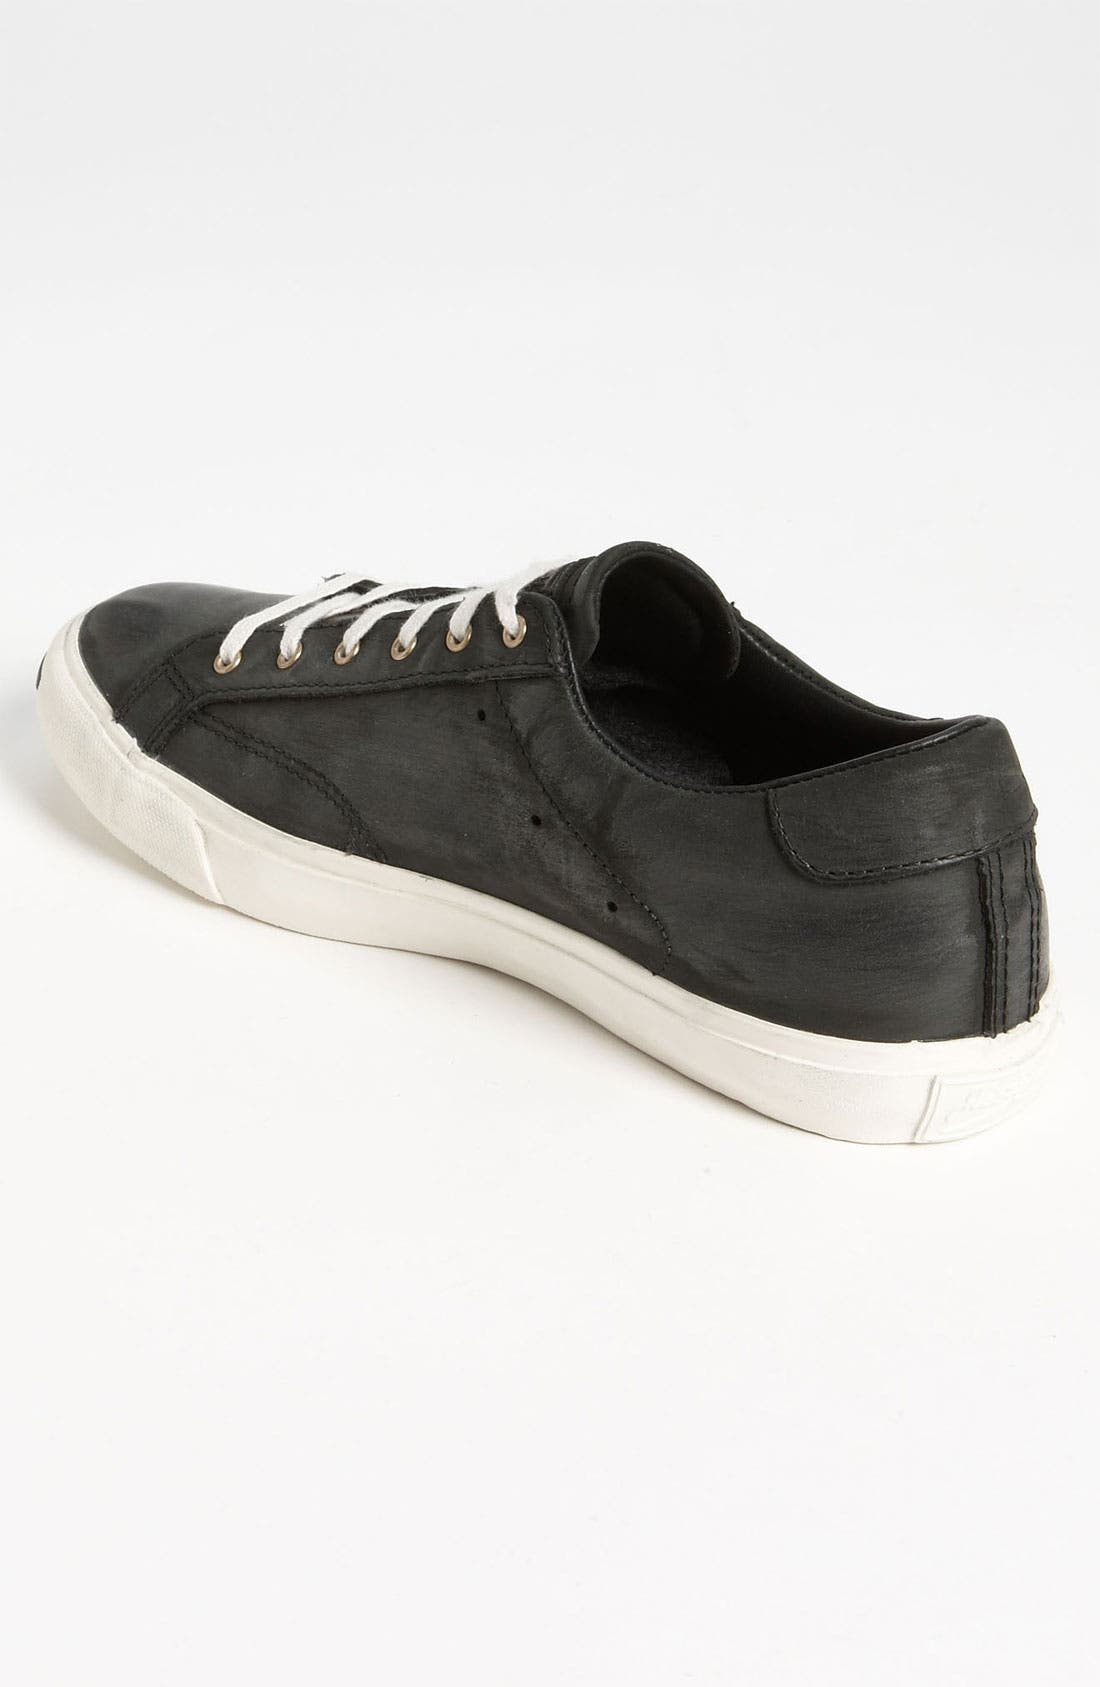 Alternate Image 2  - Converse 'Jack Purcell - Peter' Sneaker (Unisex)